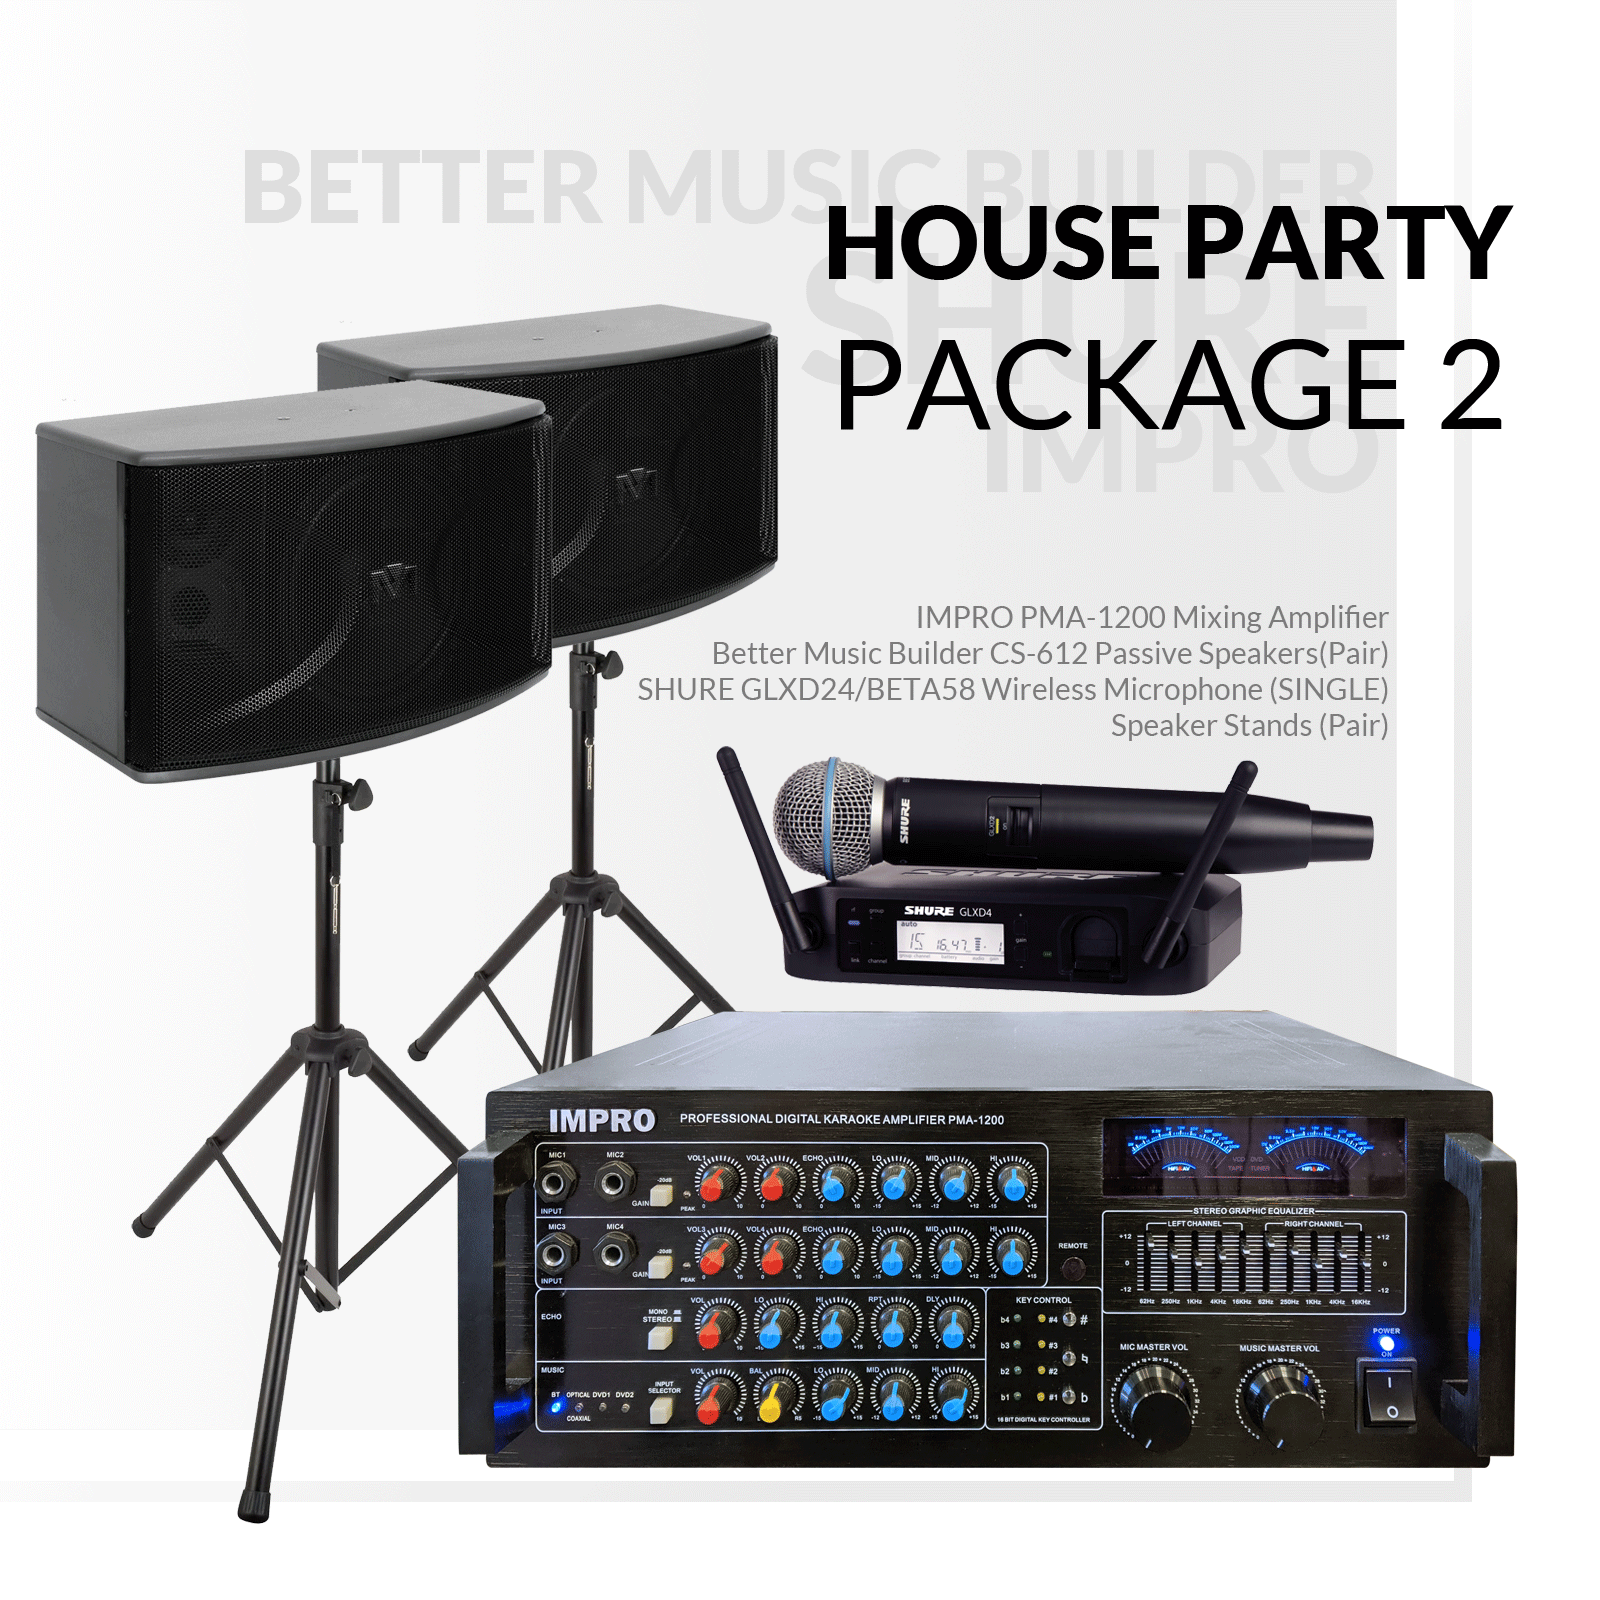 House Party Package #02: ImPro PMA-1200 + HD-888A (6TB) + BetterMusicBuilder CS-612 G3 + Stands + Shure GLX Series Microphone